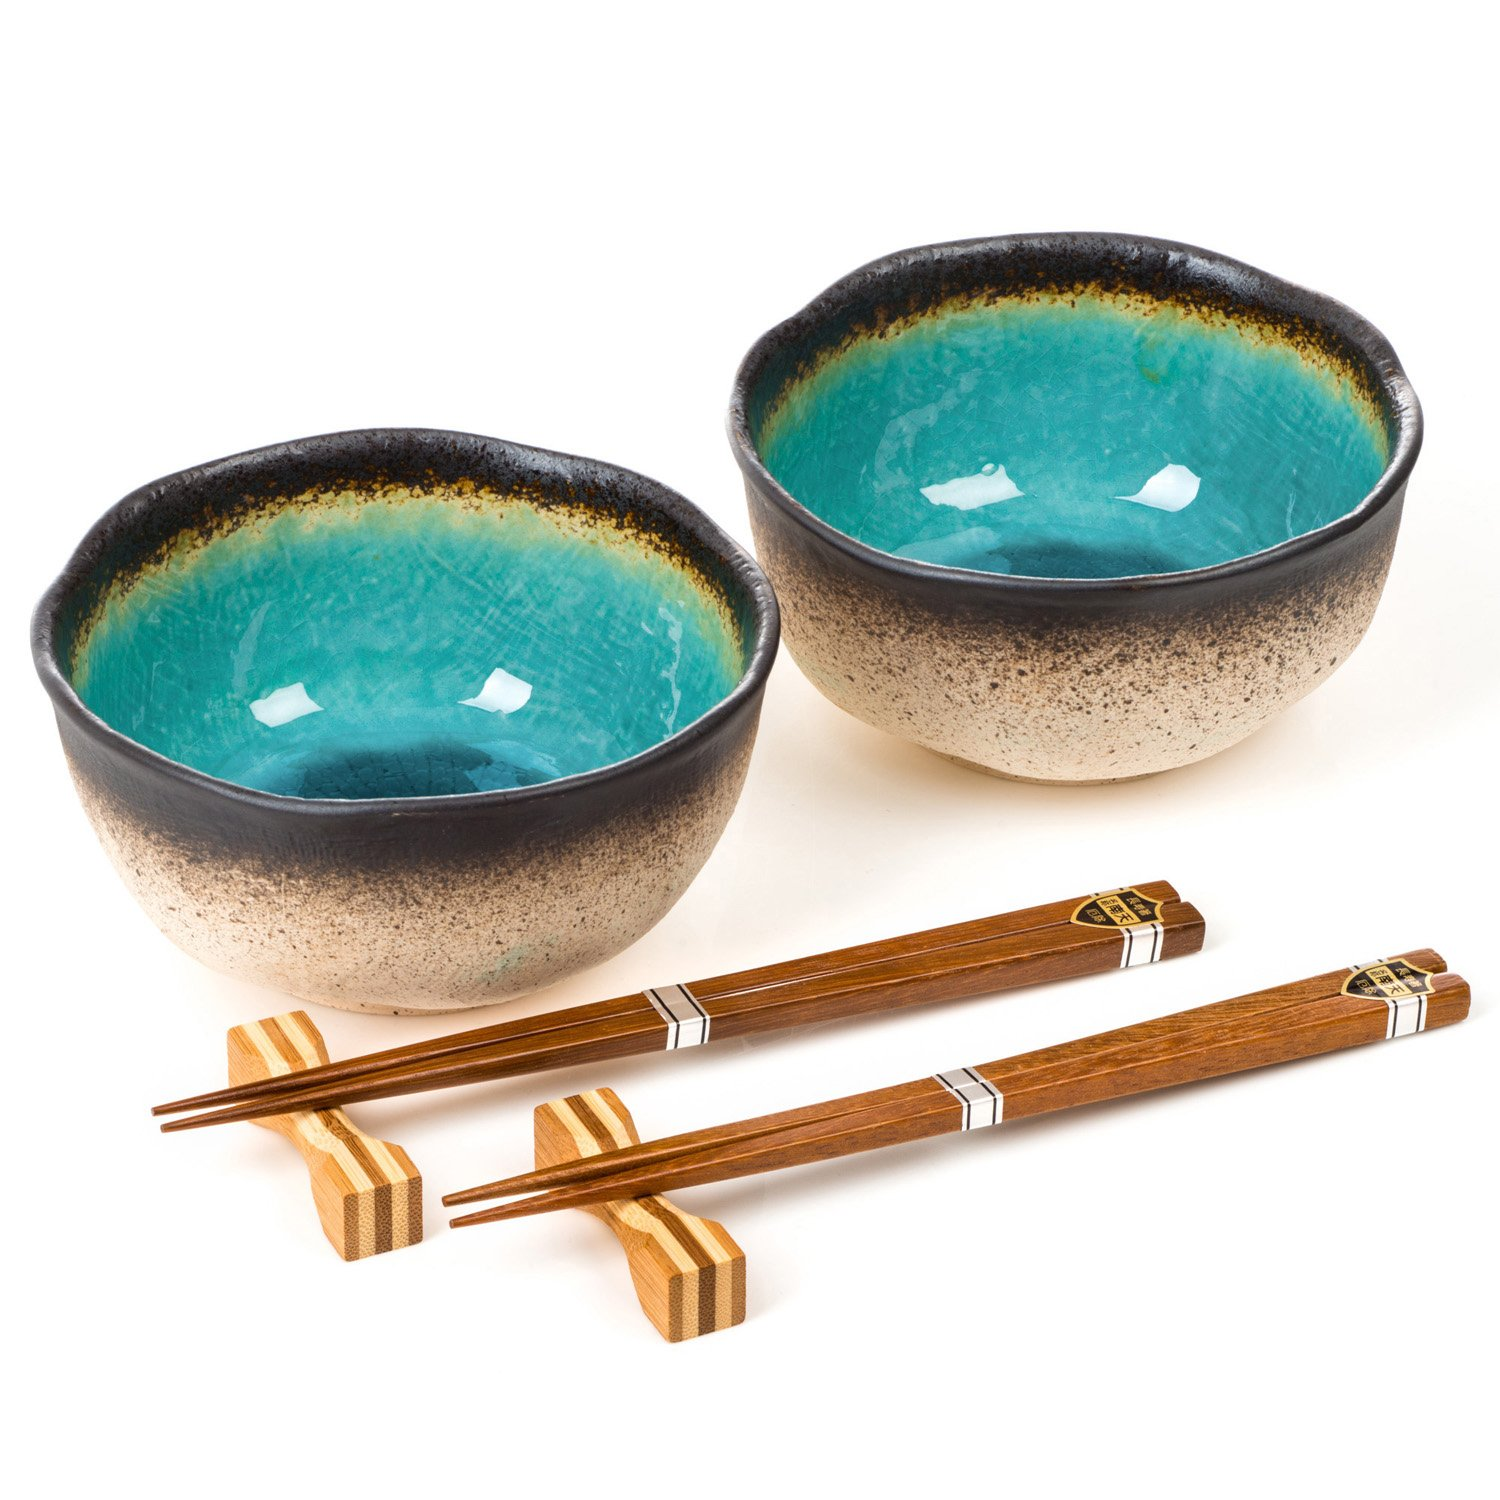 Blue Crackleglaze Ceramic Bowl Set with Chopsticks Zen Minded